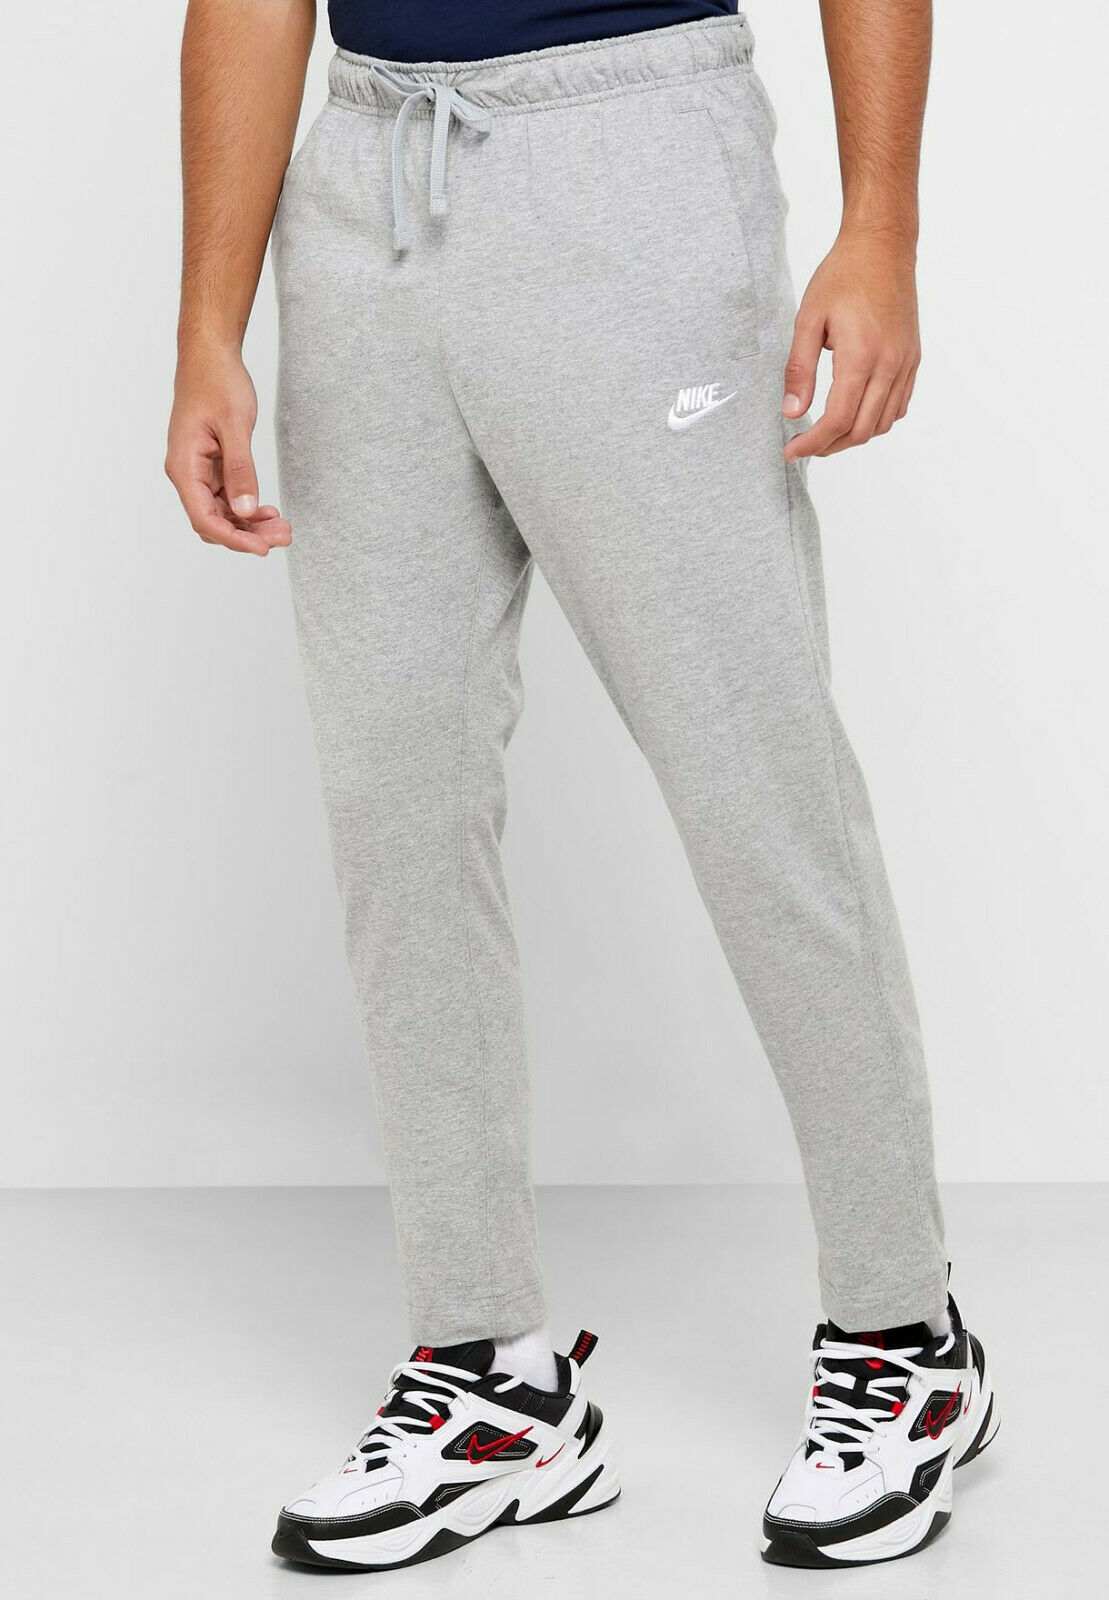 Primary image for Nike Mens NSW Club Sweapants BV2766-063 Grey/White Jogging Pants Size Large